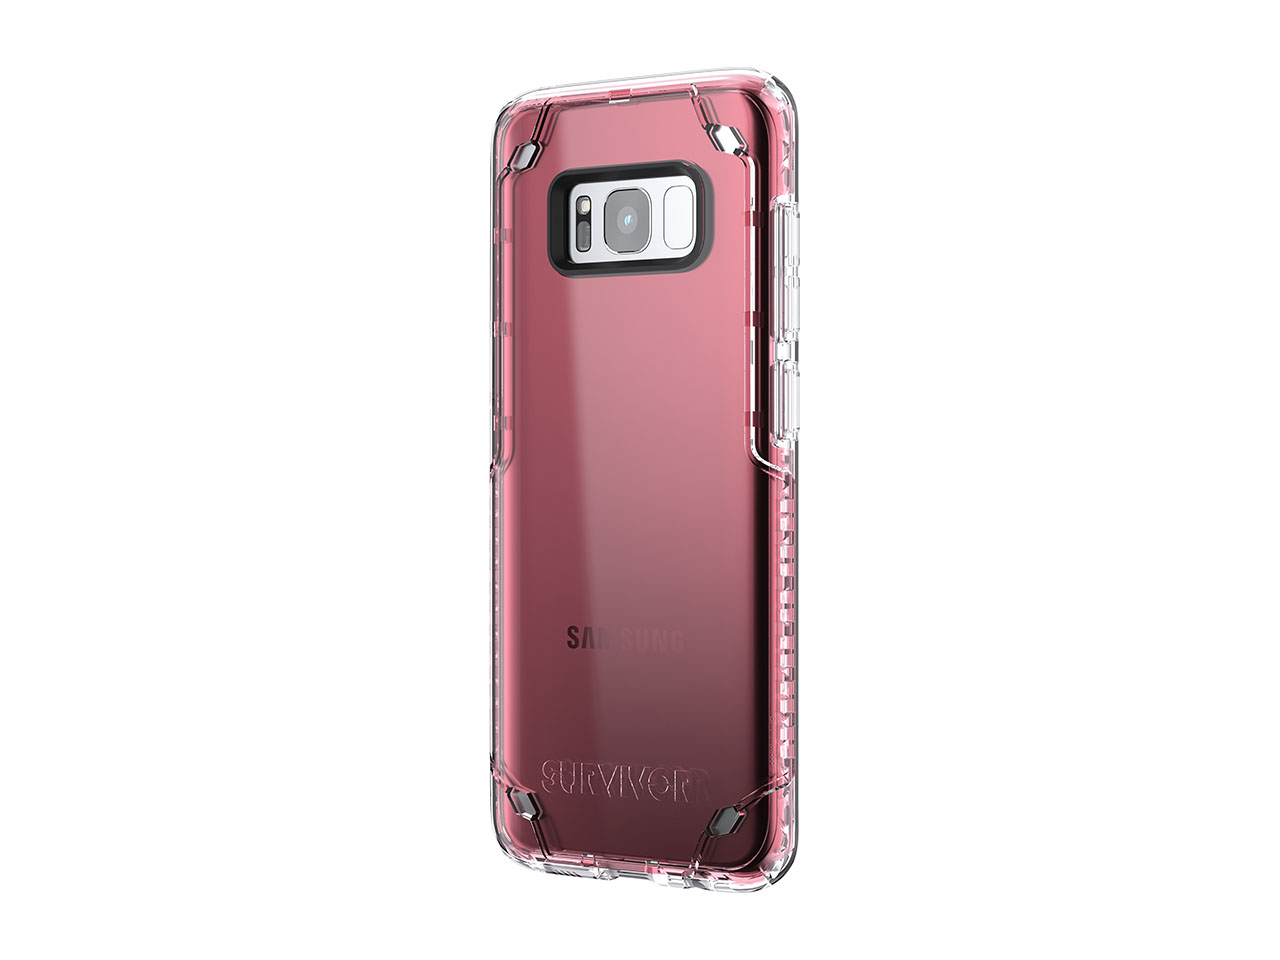 Samsung Galaxy S8 Protective Clear Case